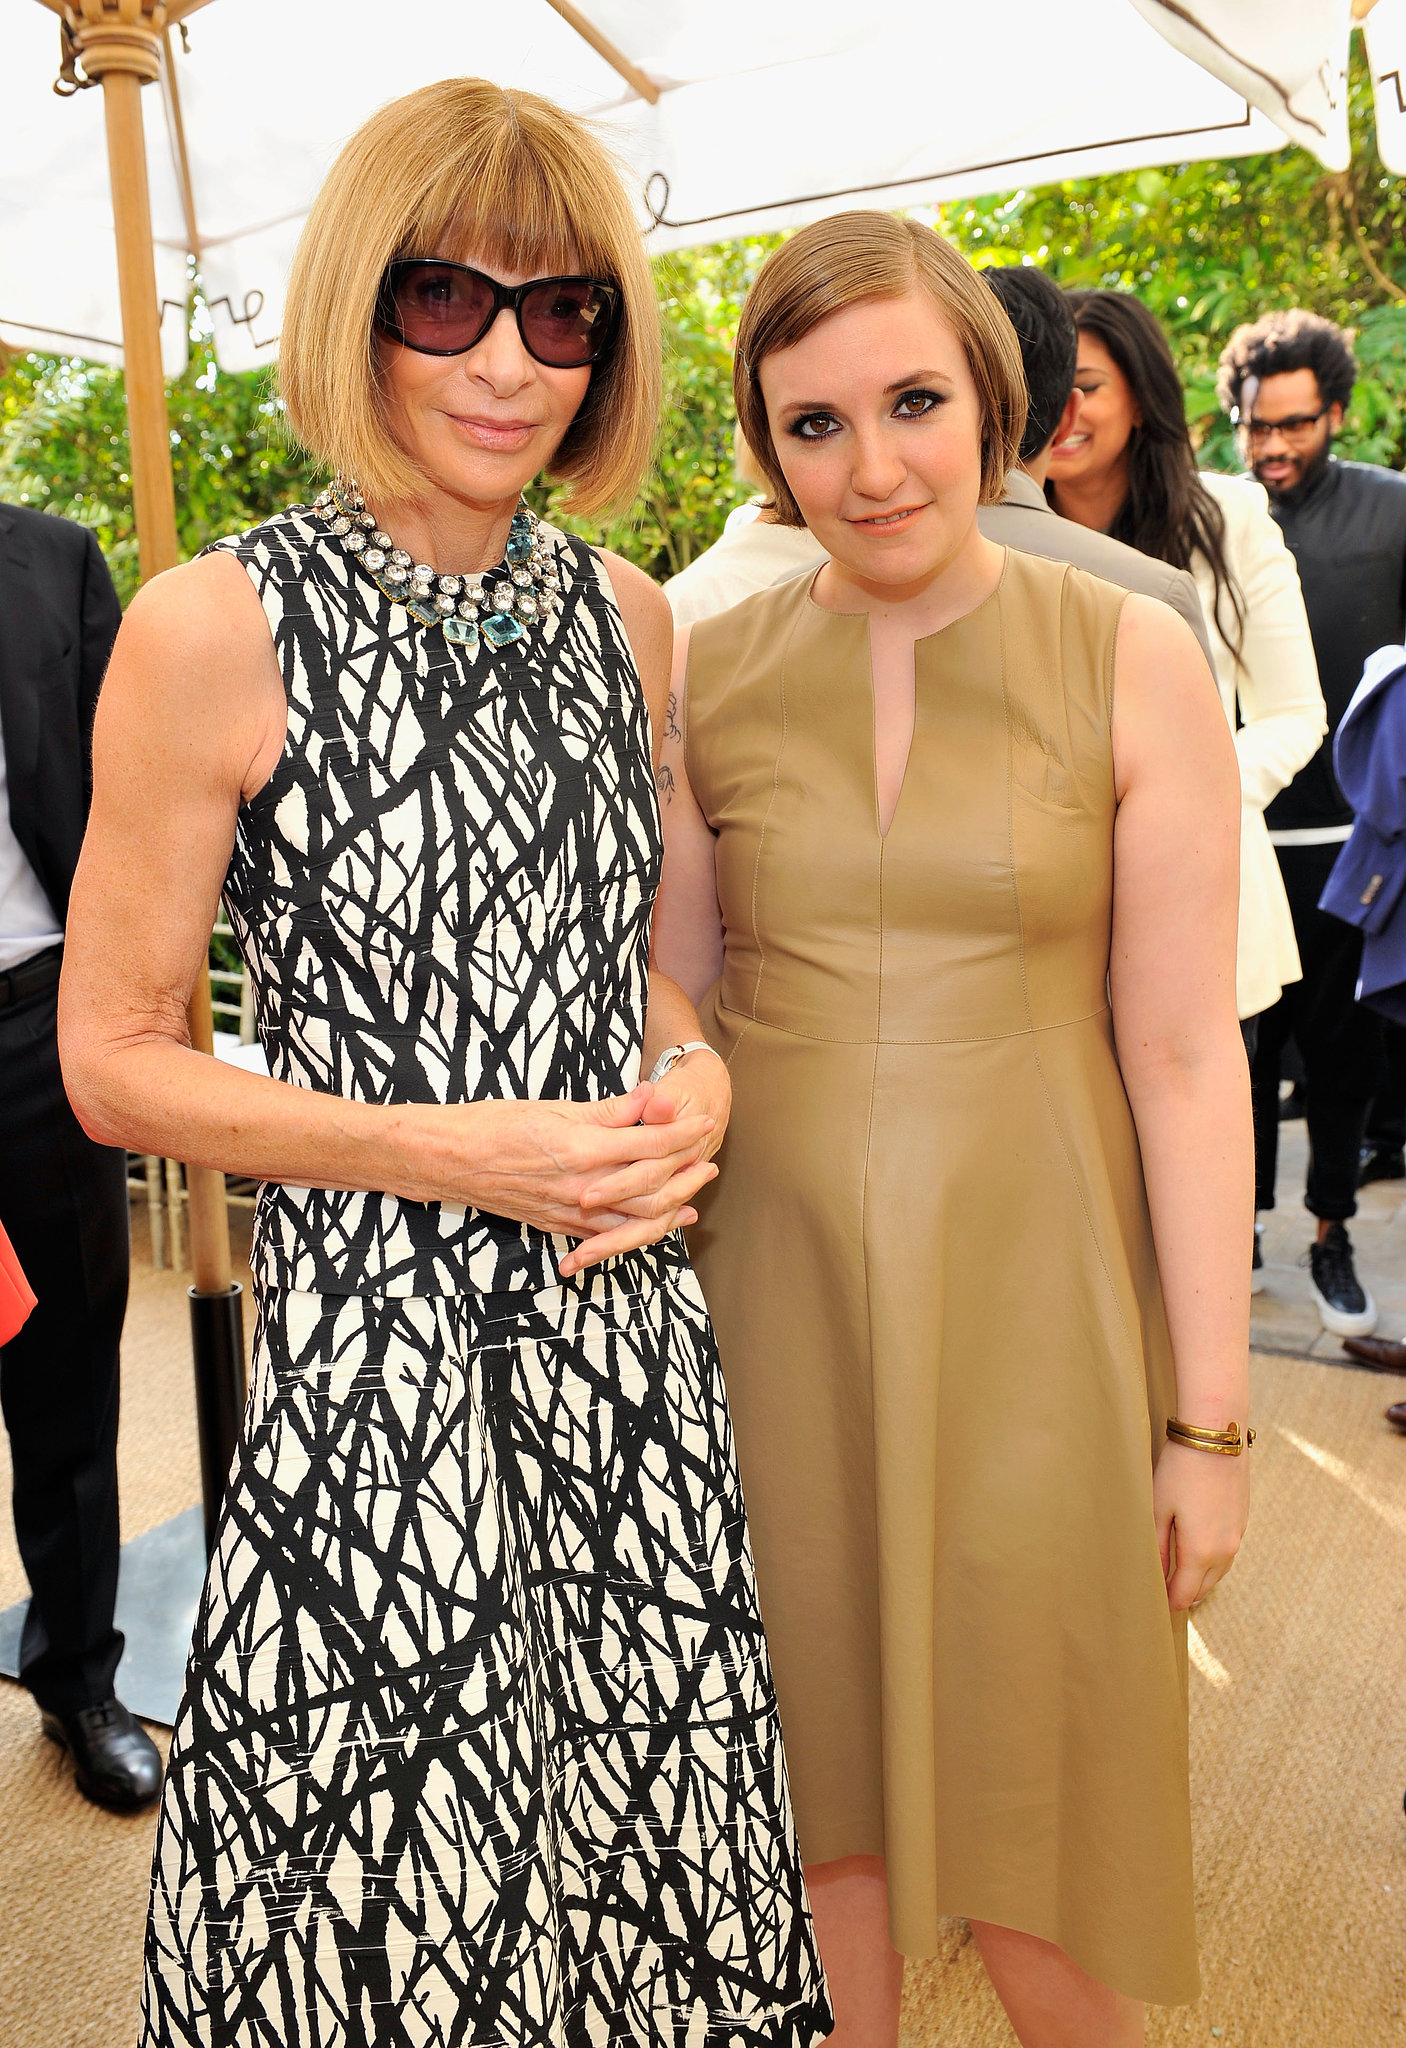 Anna Wintour and Lena Dunham made a well-bobbed pair while feting the CFDA/Vogue Fashion Fund nominees.